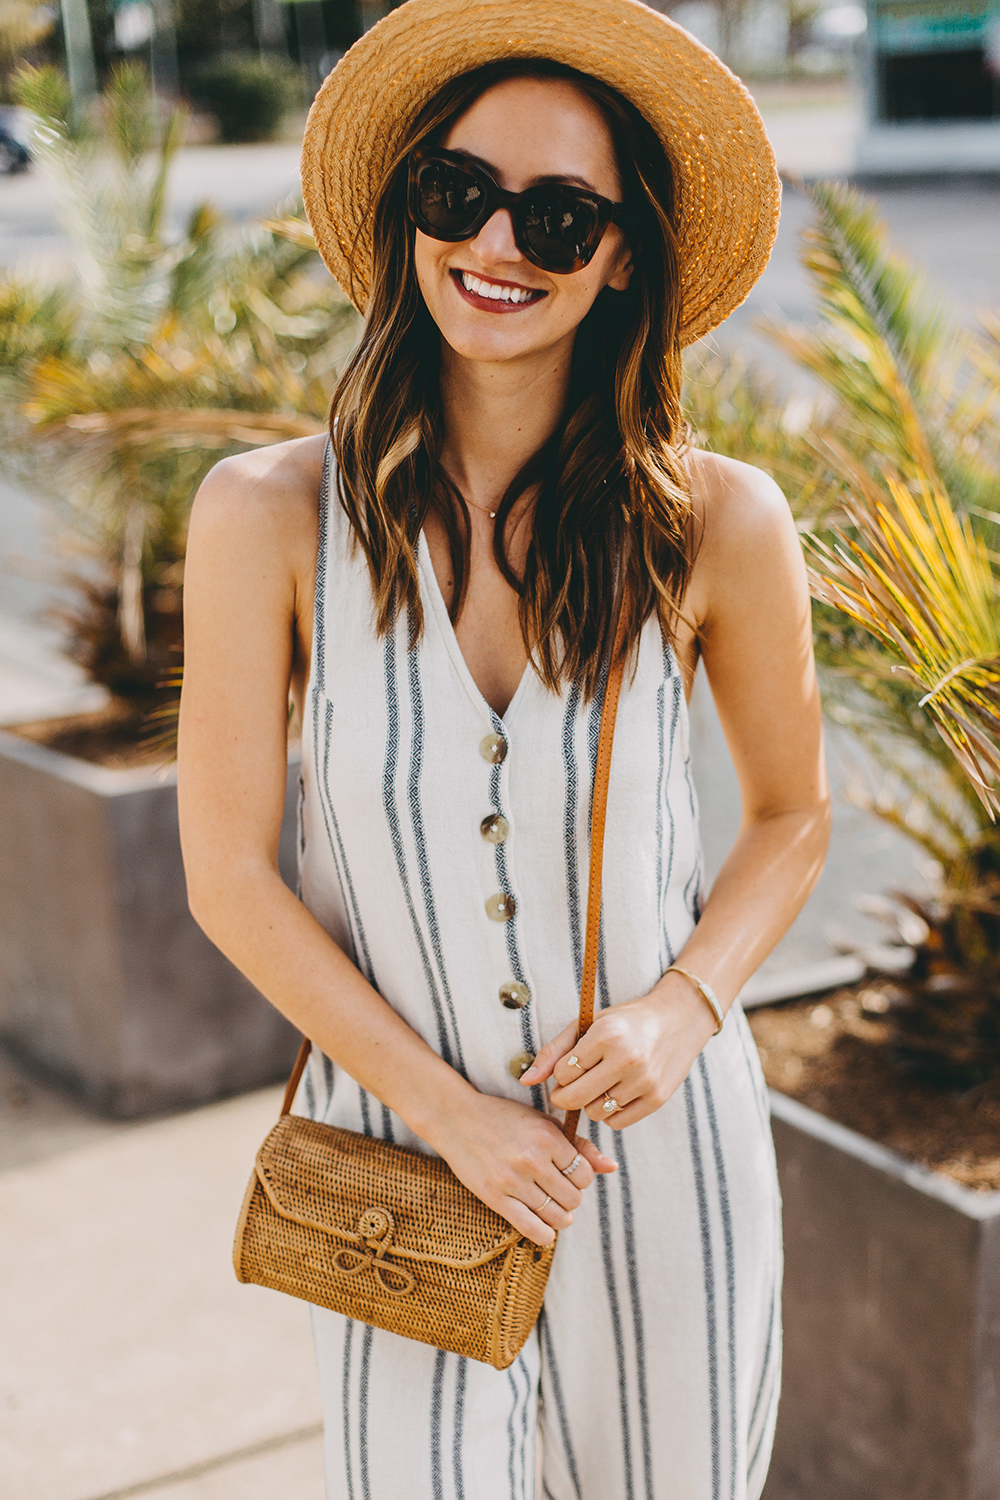 livvyland-blog-olivia-watson-austin-texas-fashion-lifestyle-style-blogger-urban-outfitters-striped-jumpsuit-outfit-rattan-handbag-2